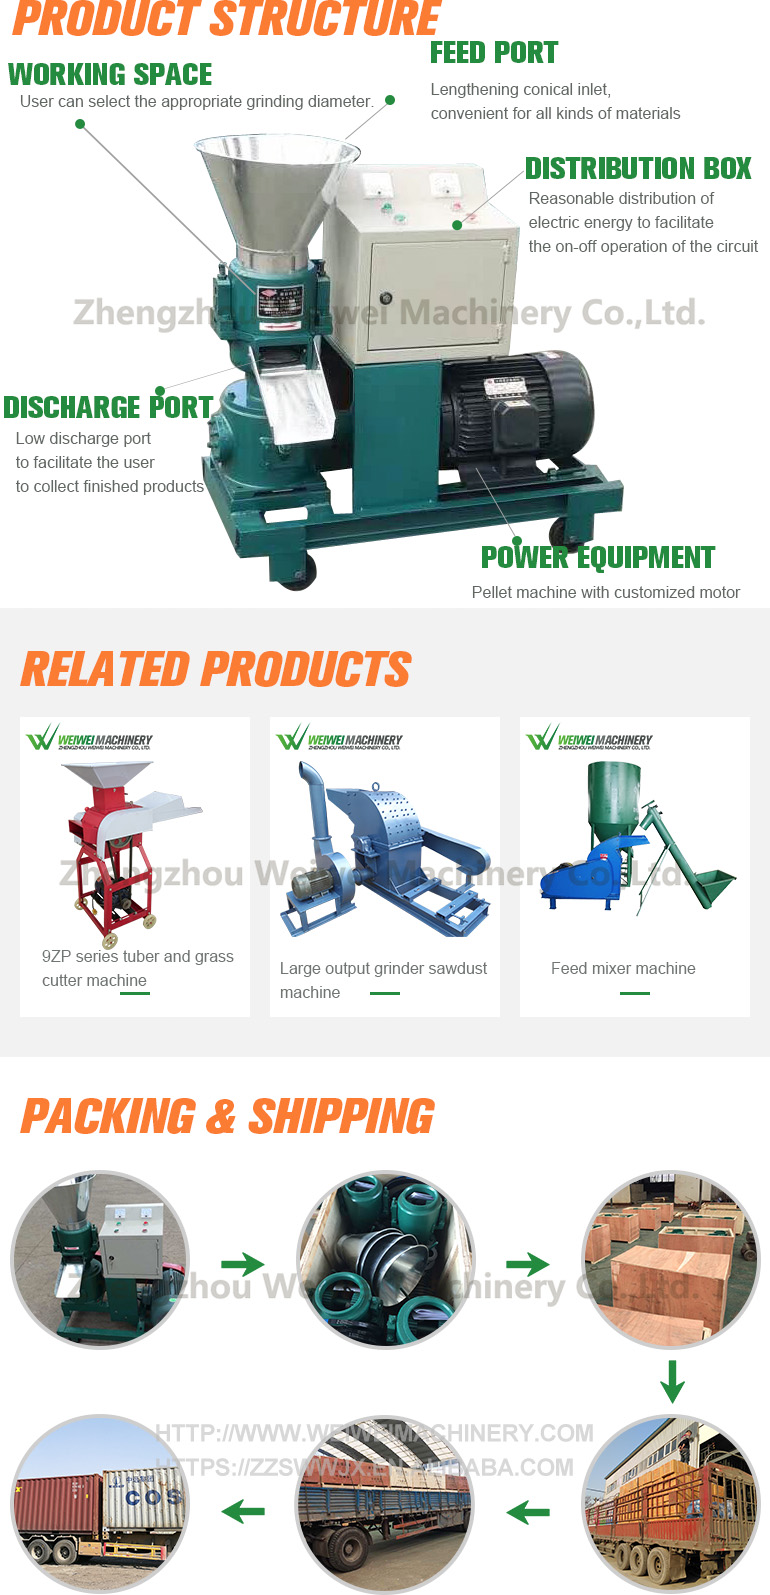 Weiwei 120 model farm animal feed pellet machinery